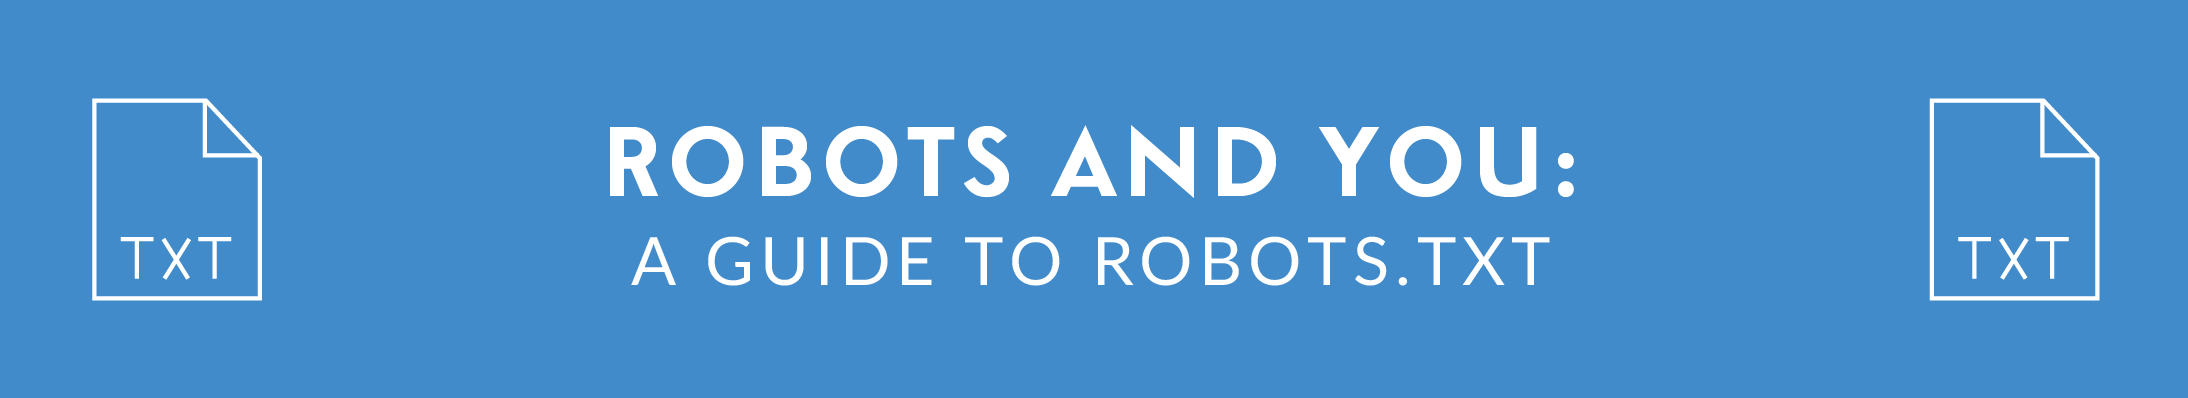 Your Robots txt Starter guide